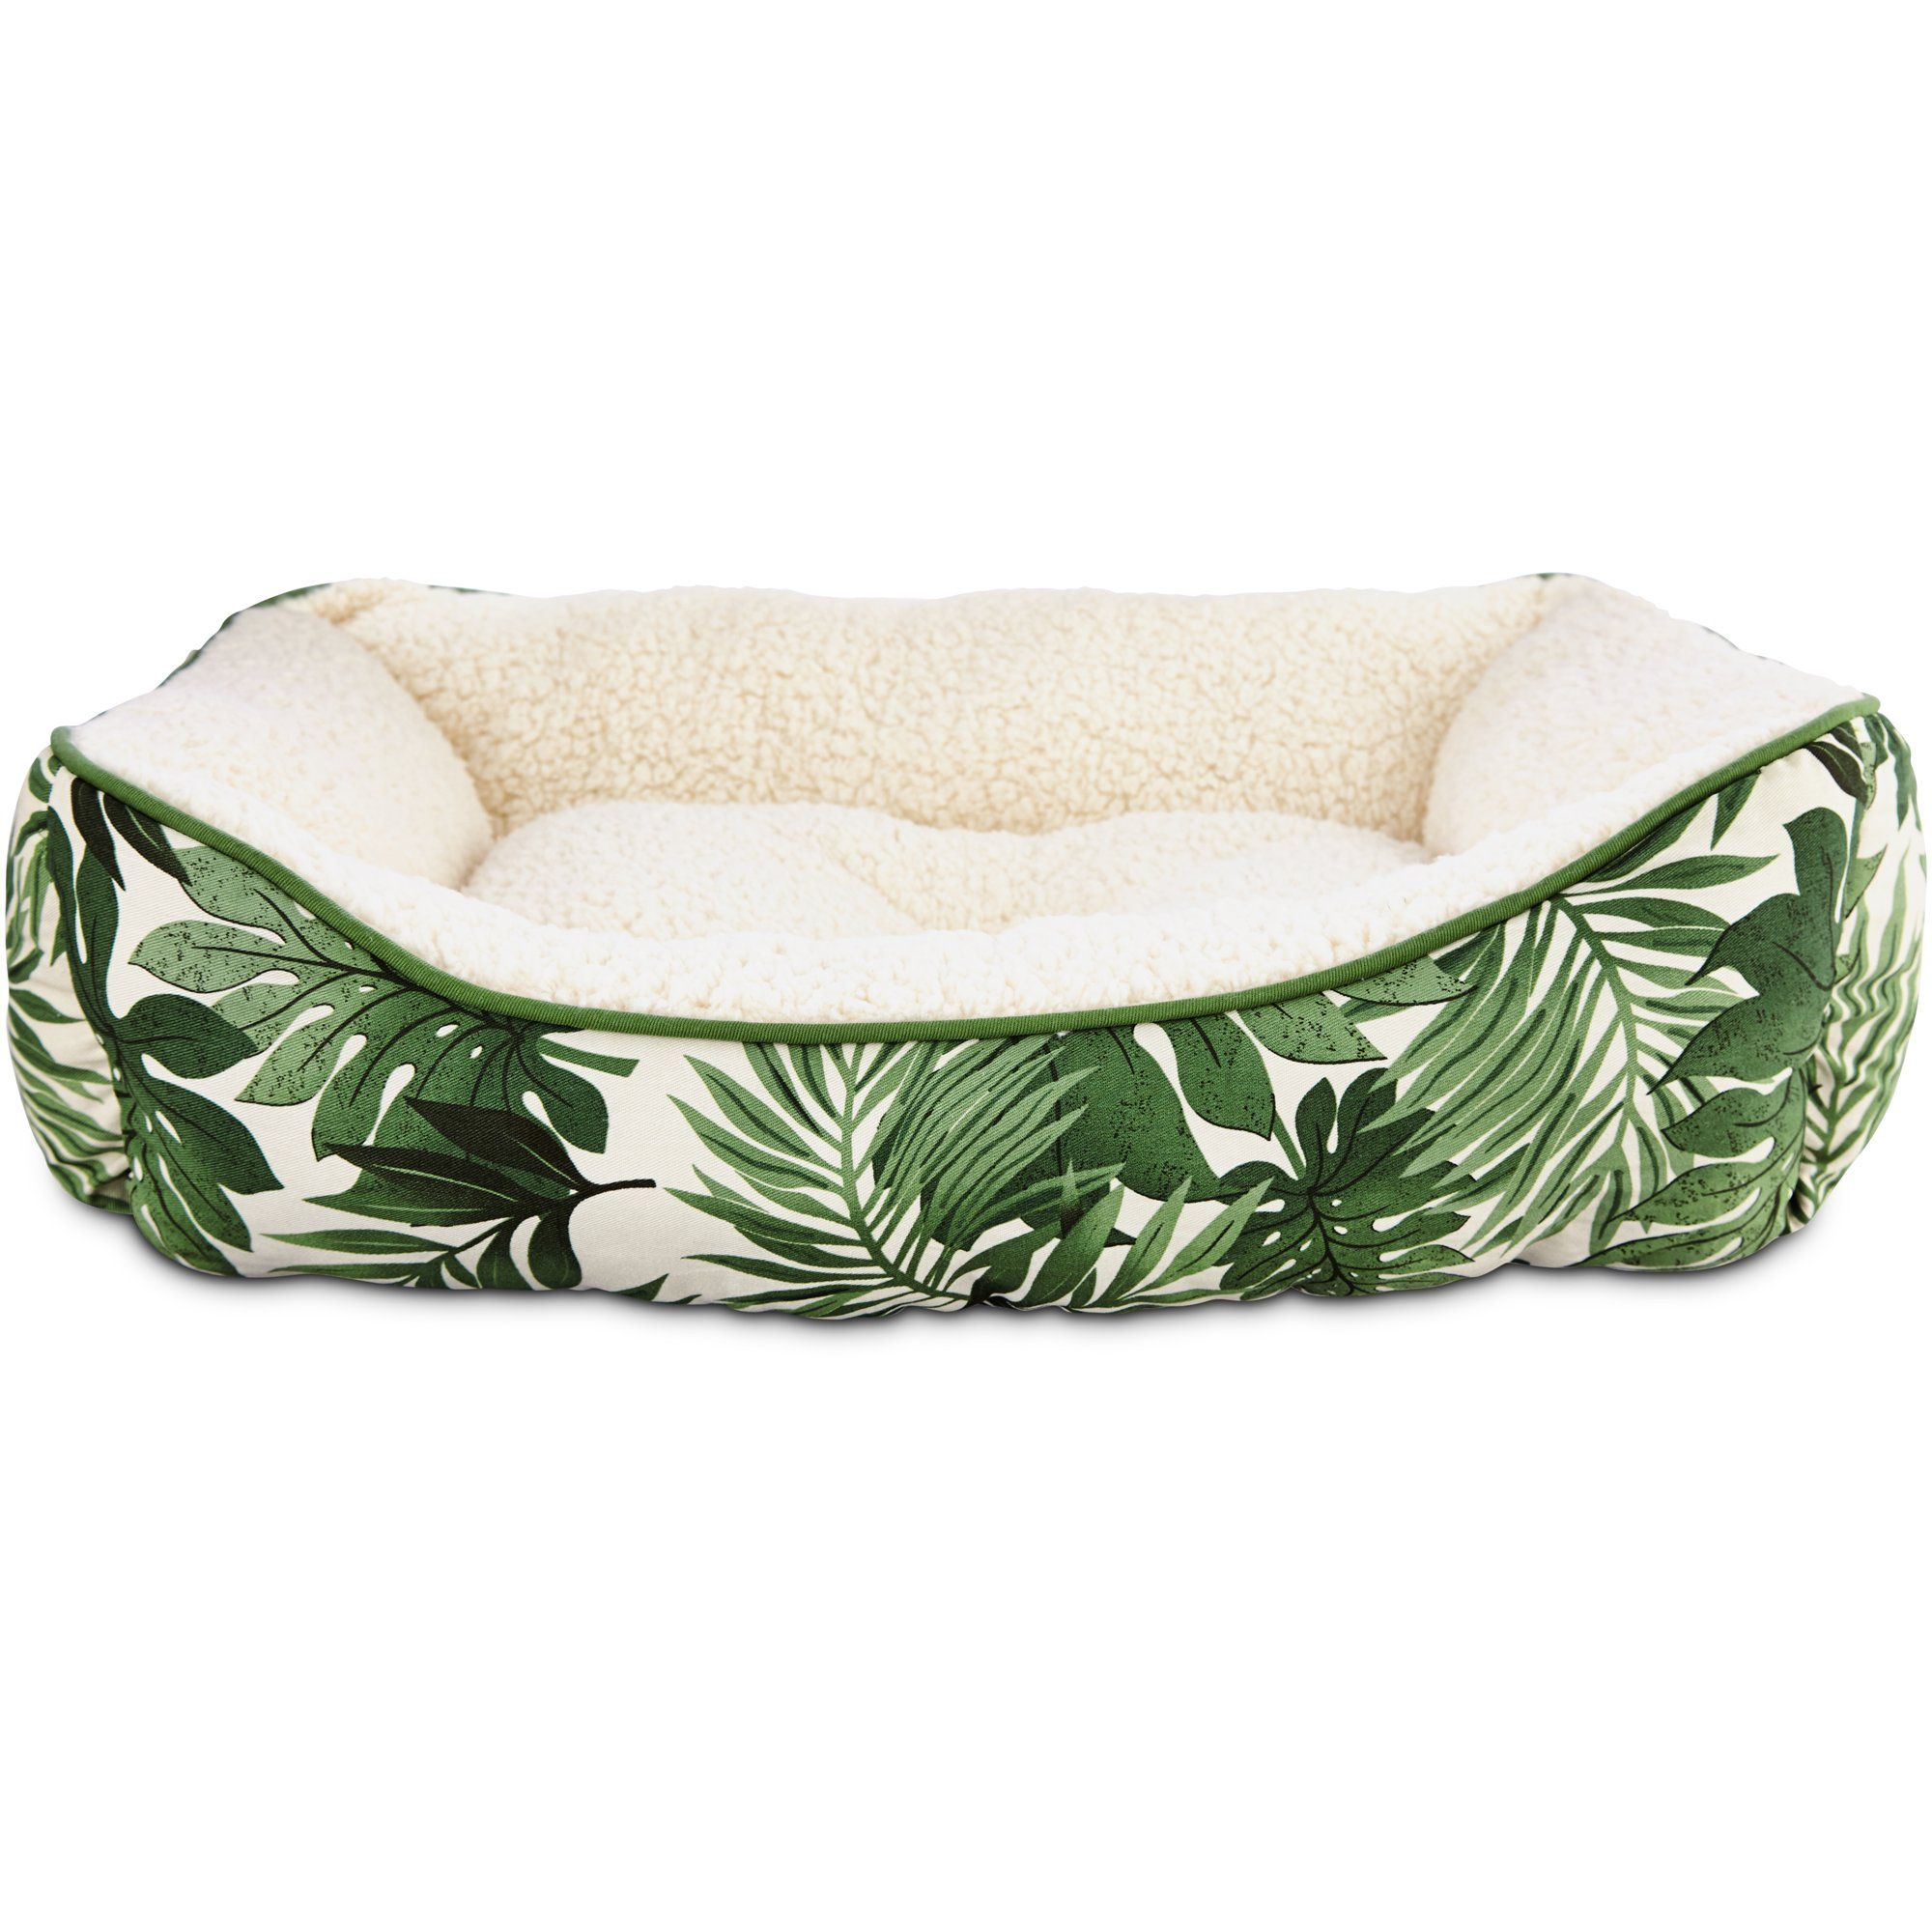 pets on safari dog bolster bed in palm leaf print - treat your pup